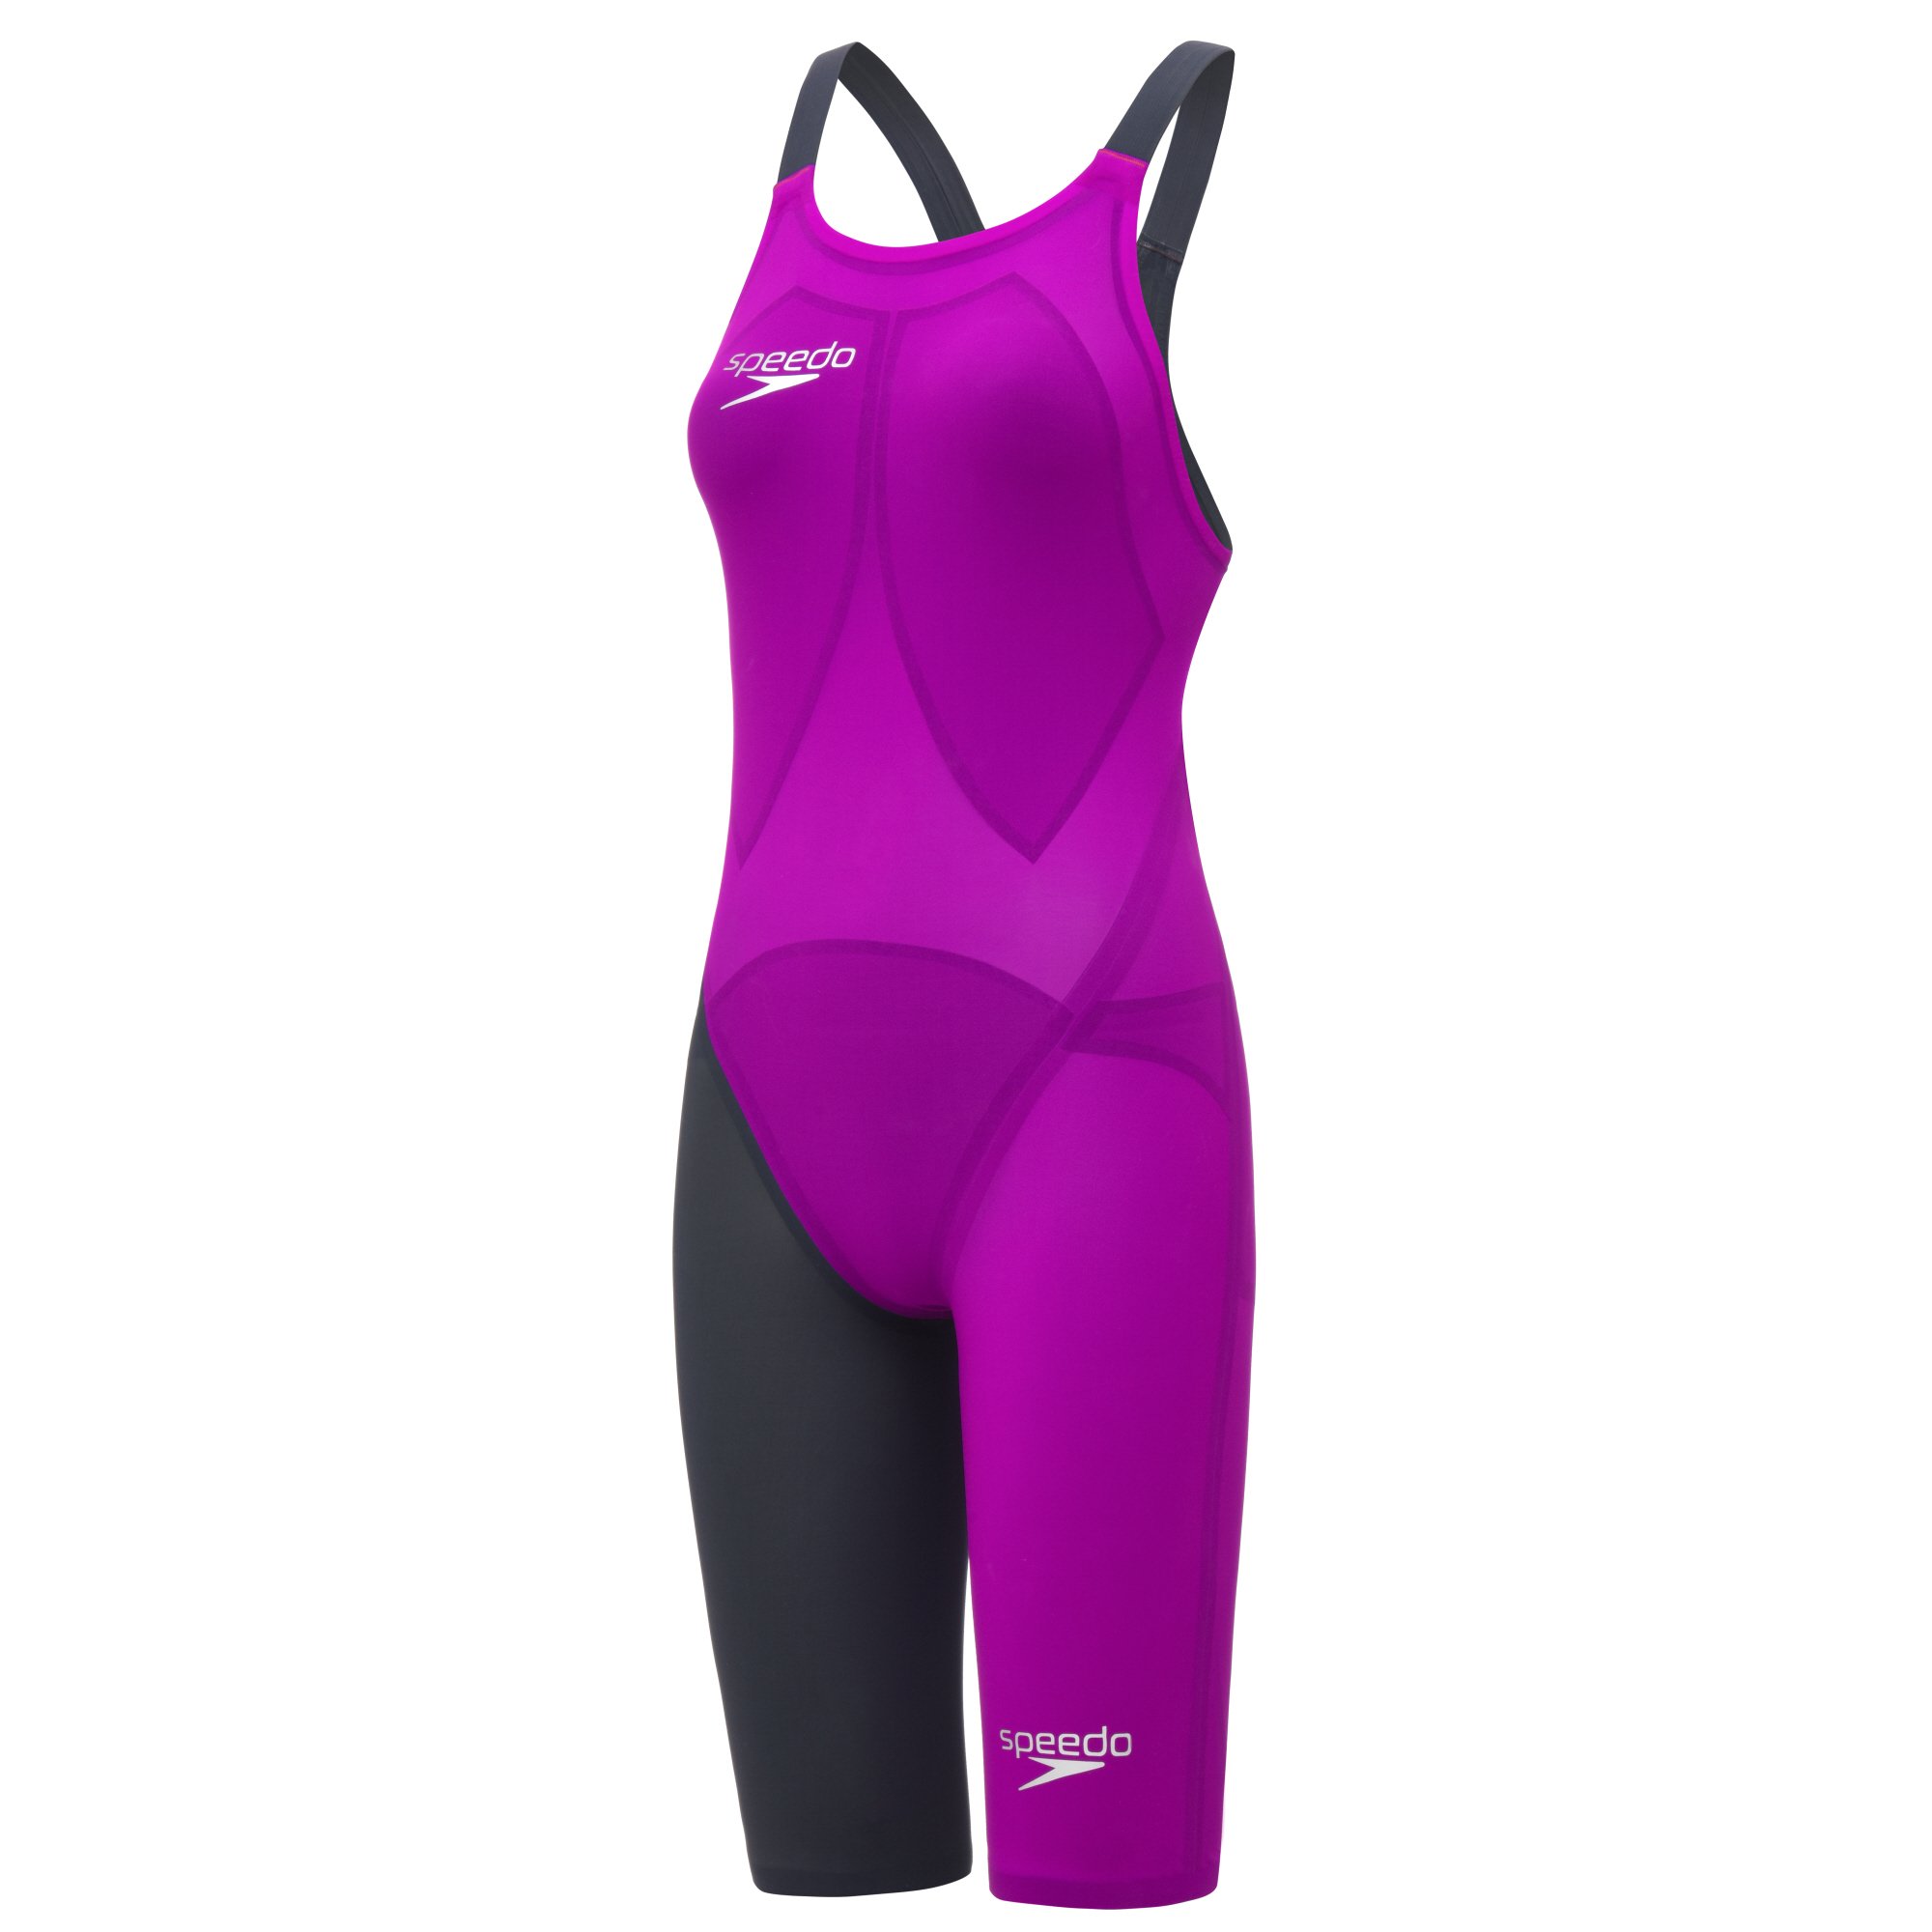 great variety styles select for latest for whole family Speedo Exclusive Fastskin LZR Racer Elite 2 Openback Knee